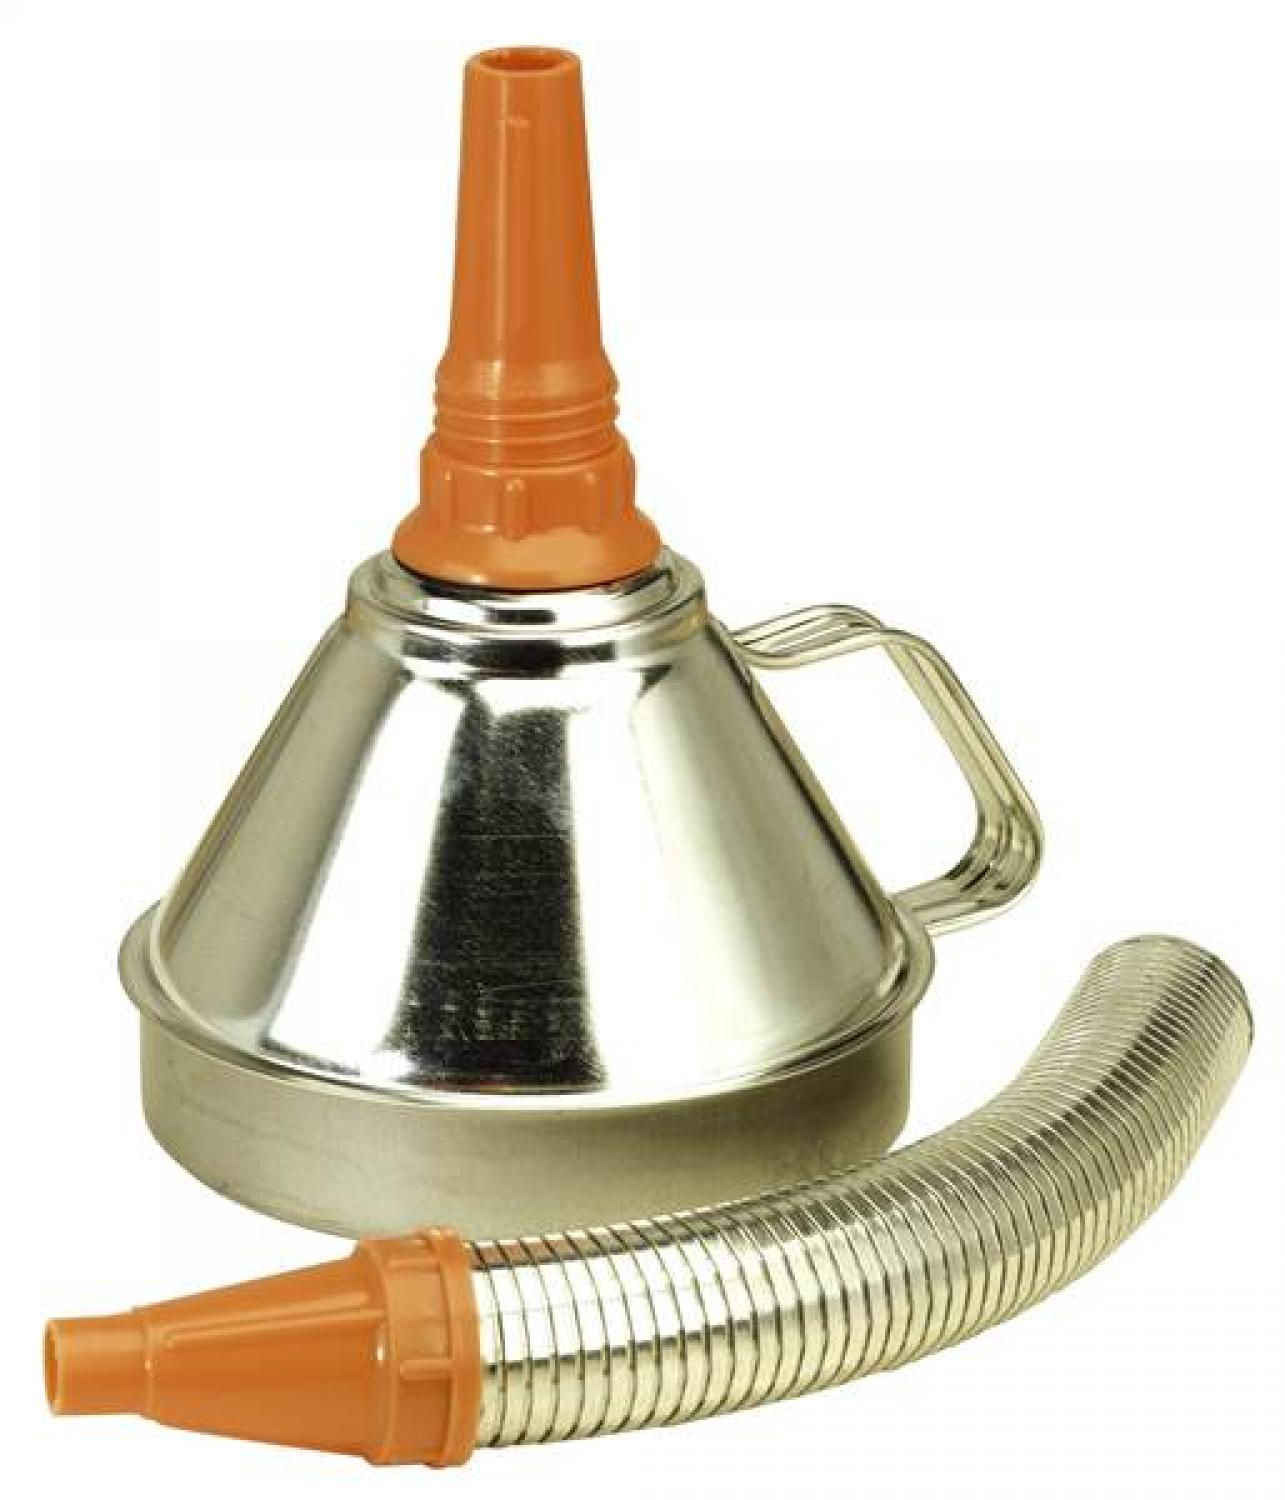 Buy Sealey Metal Funnel with Flexi Spout & Filter 160mm